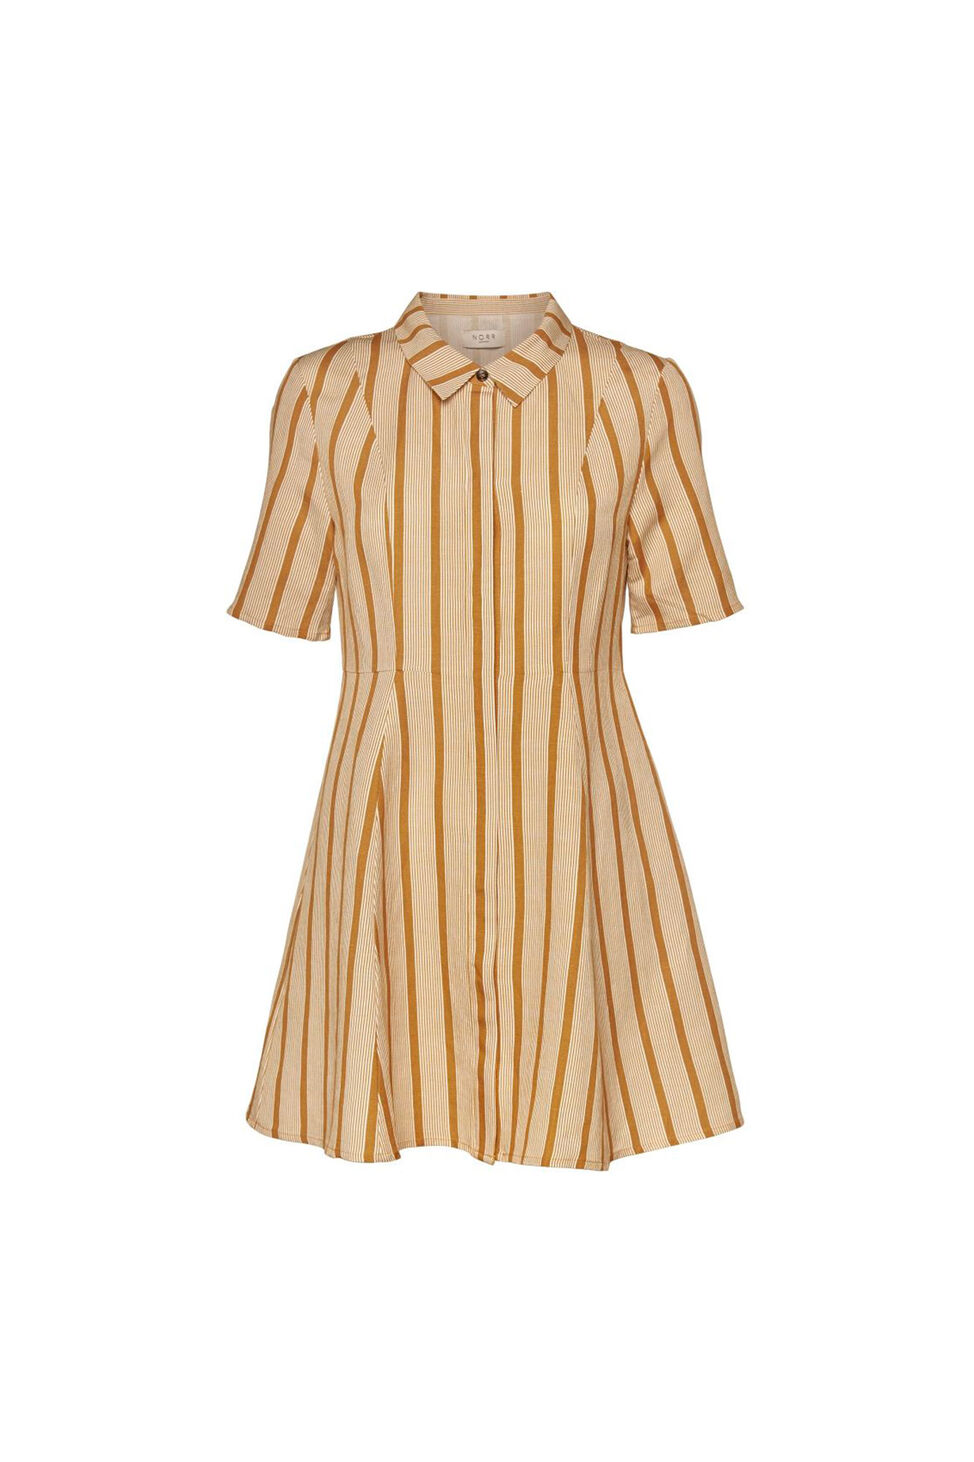 Amira dress 11861273, GOLDEN BROWN/WHITE STRIPE